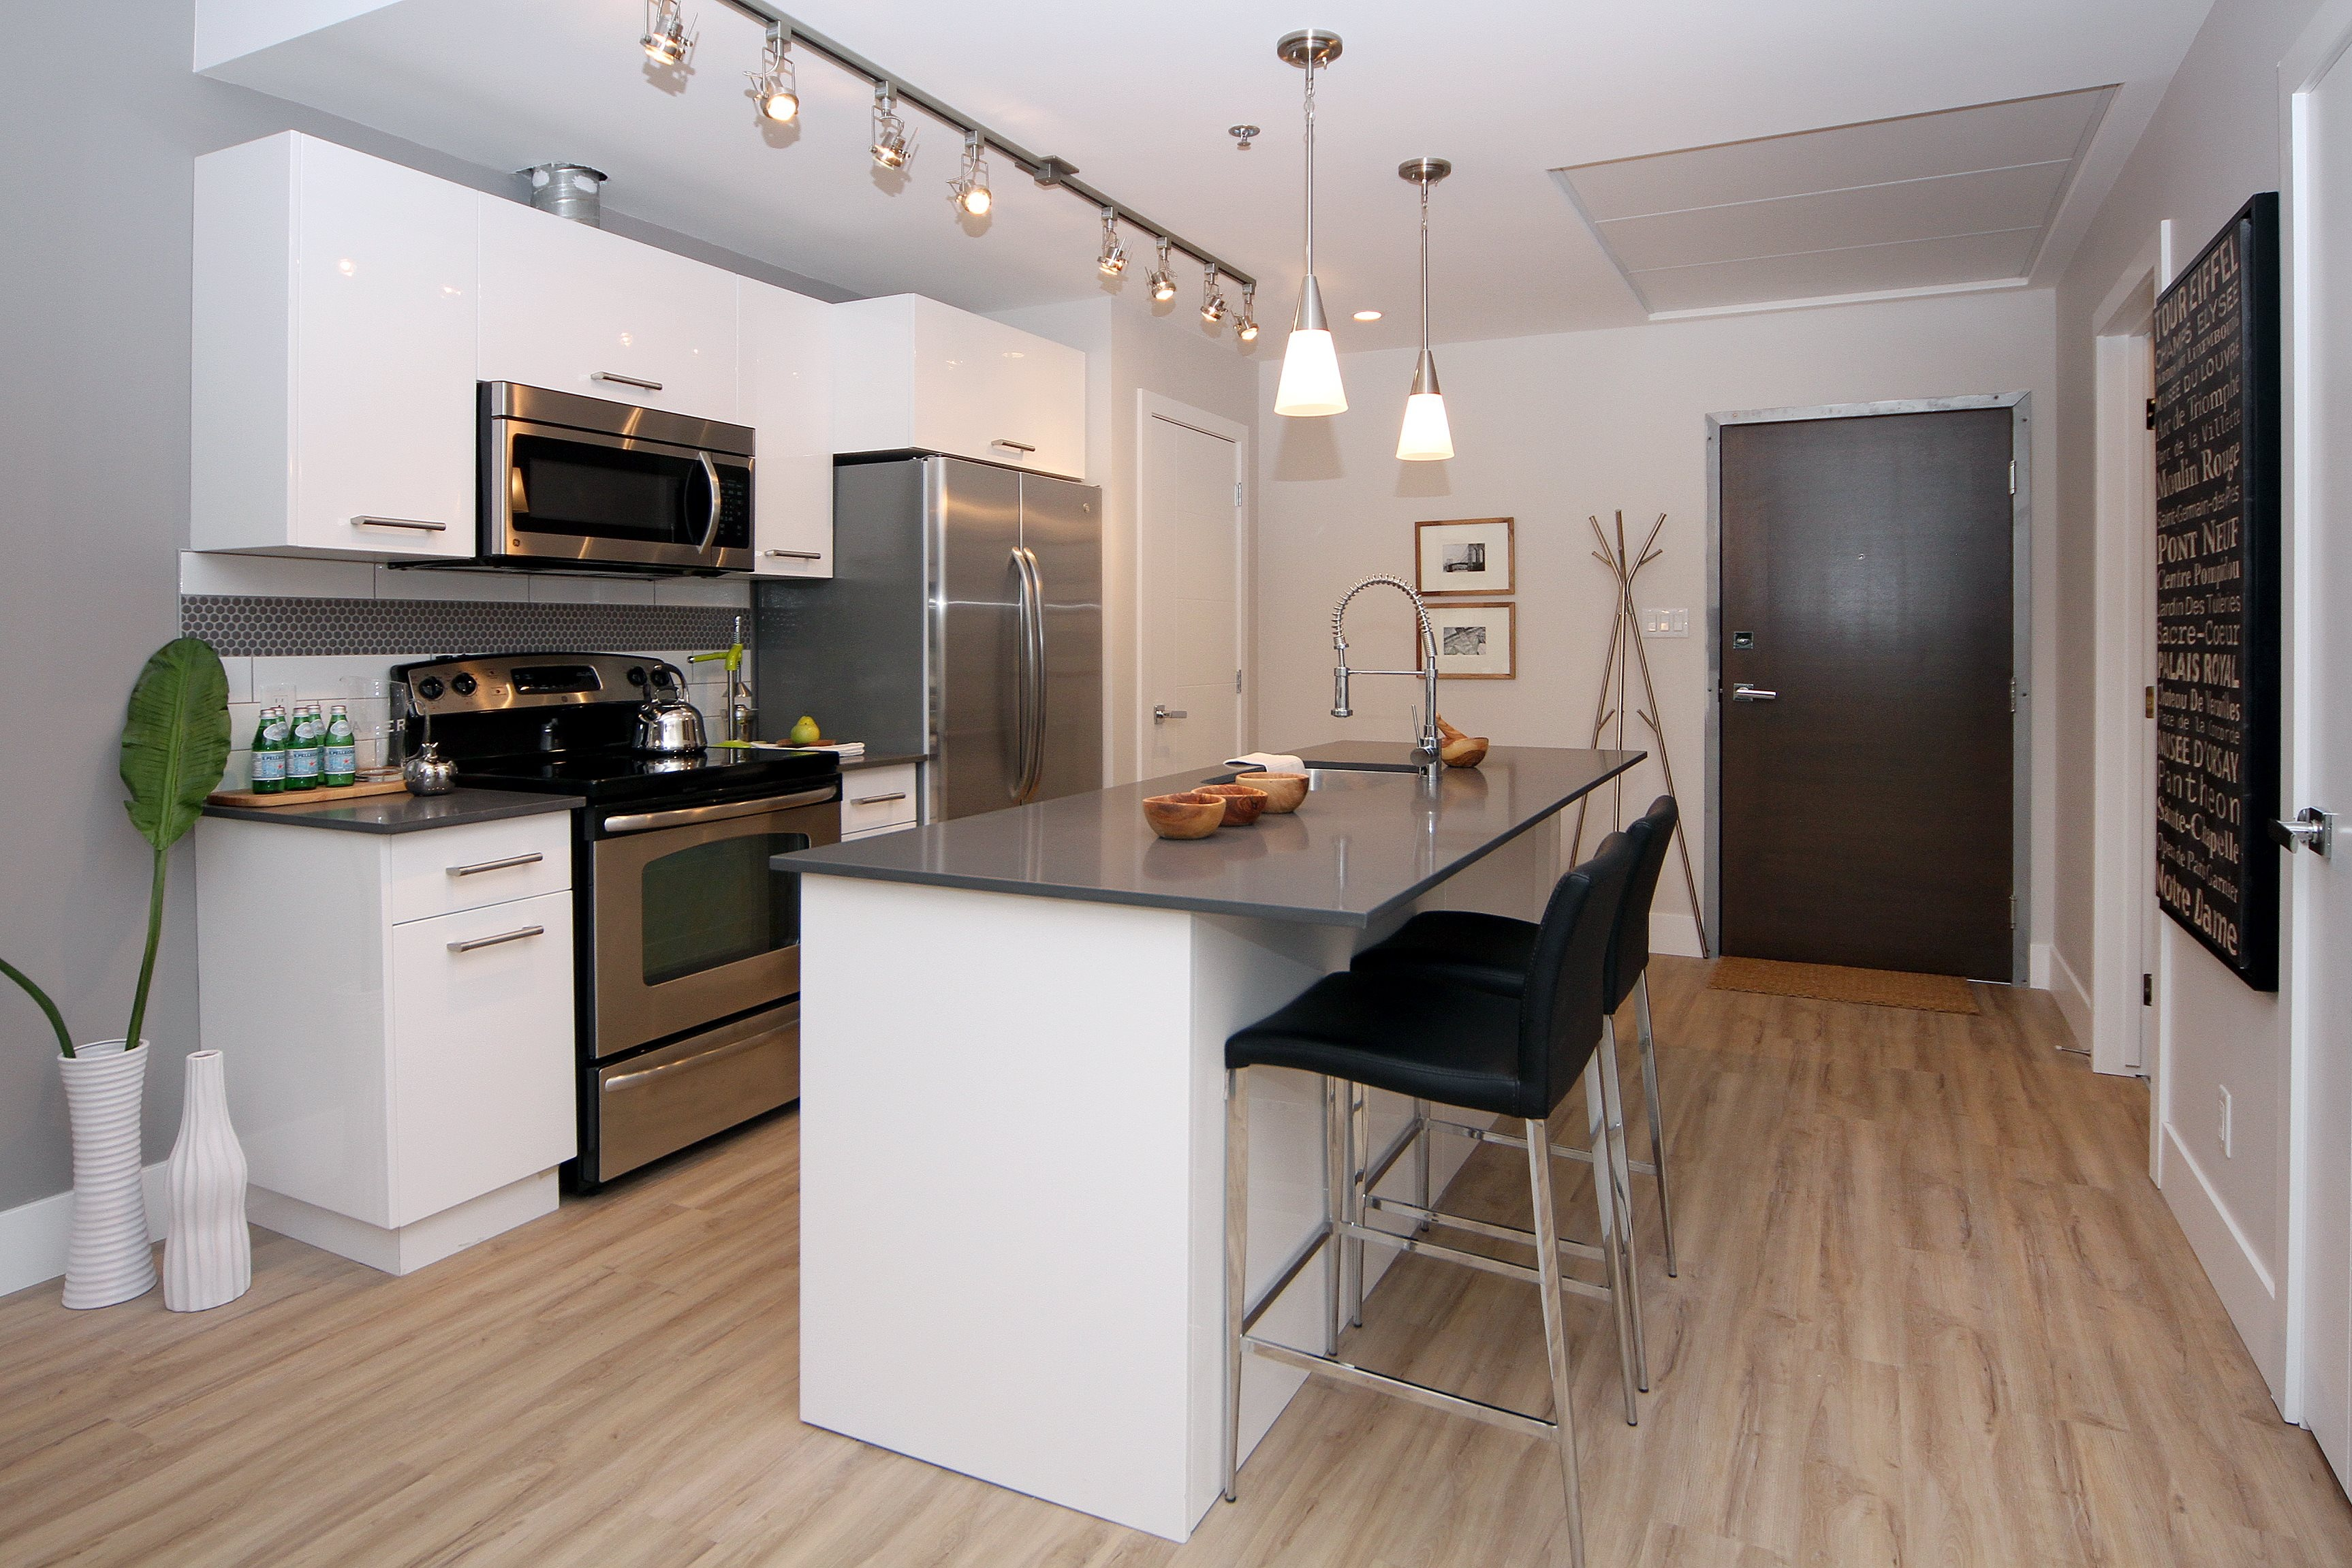 1010 First Street South West in Calgary, AB is Now Available